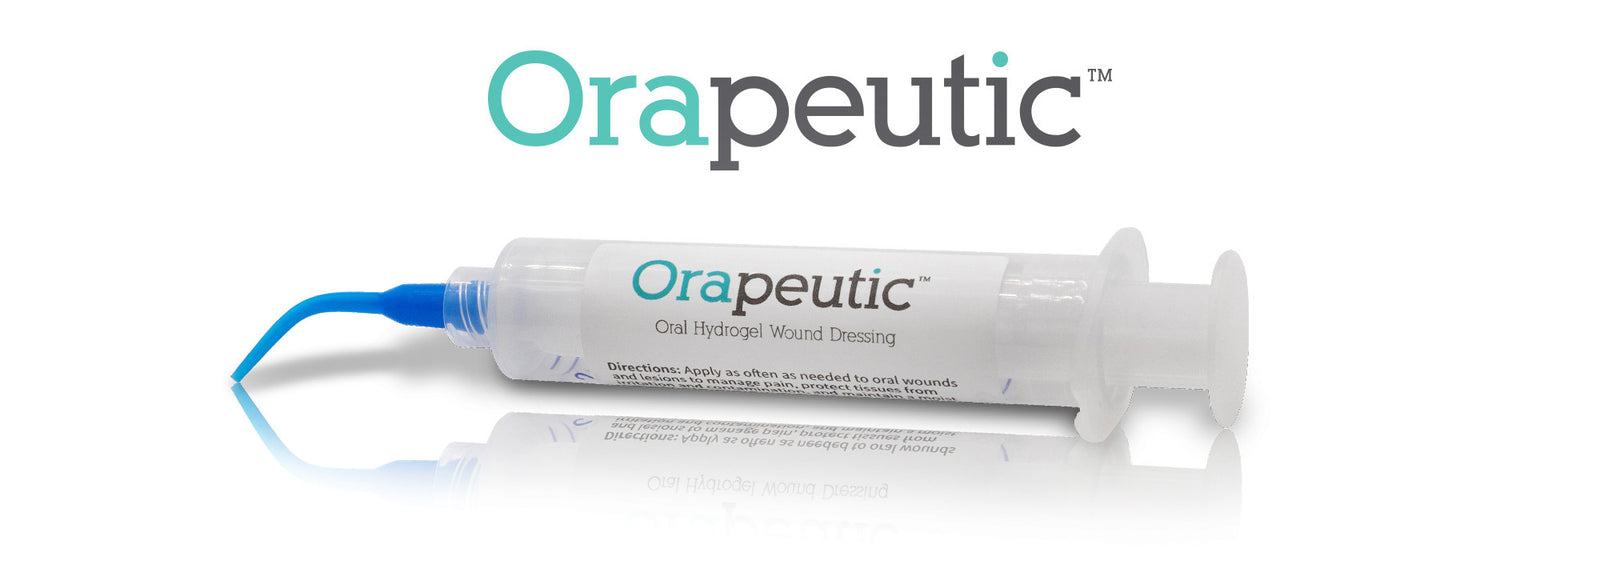 Non-Opioid Pain Relief And Protection For All Oral Wounds.